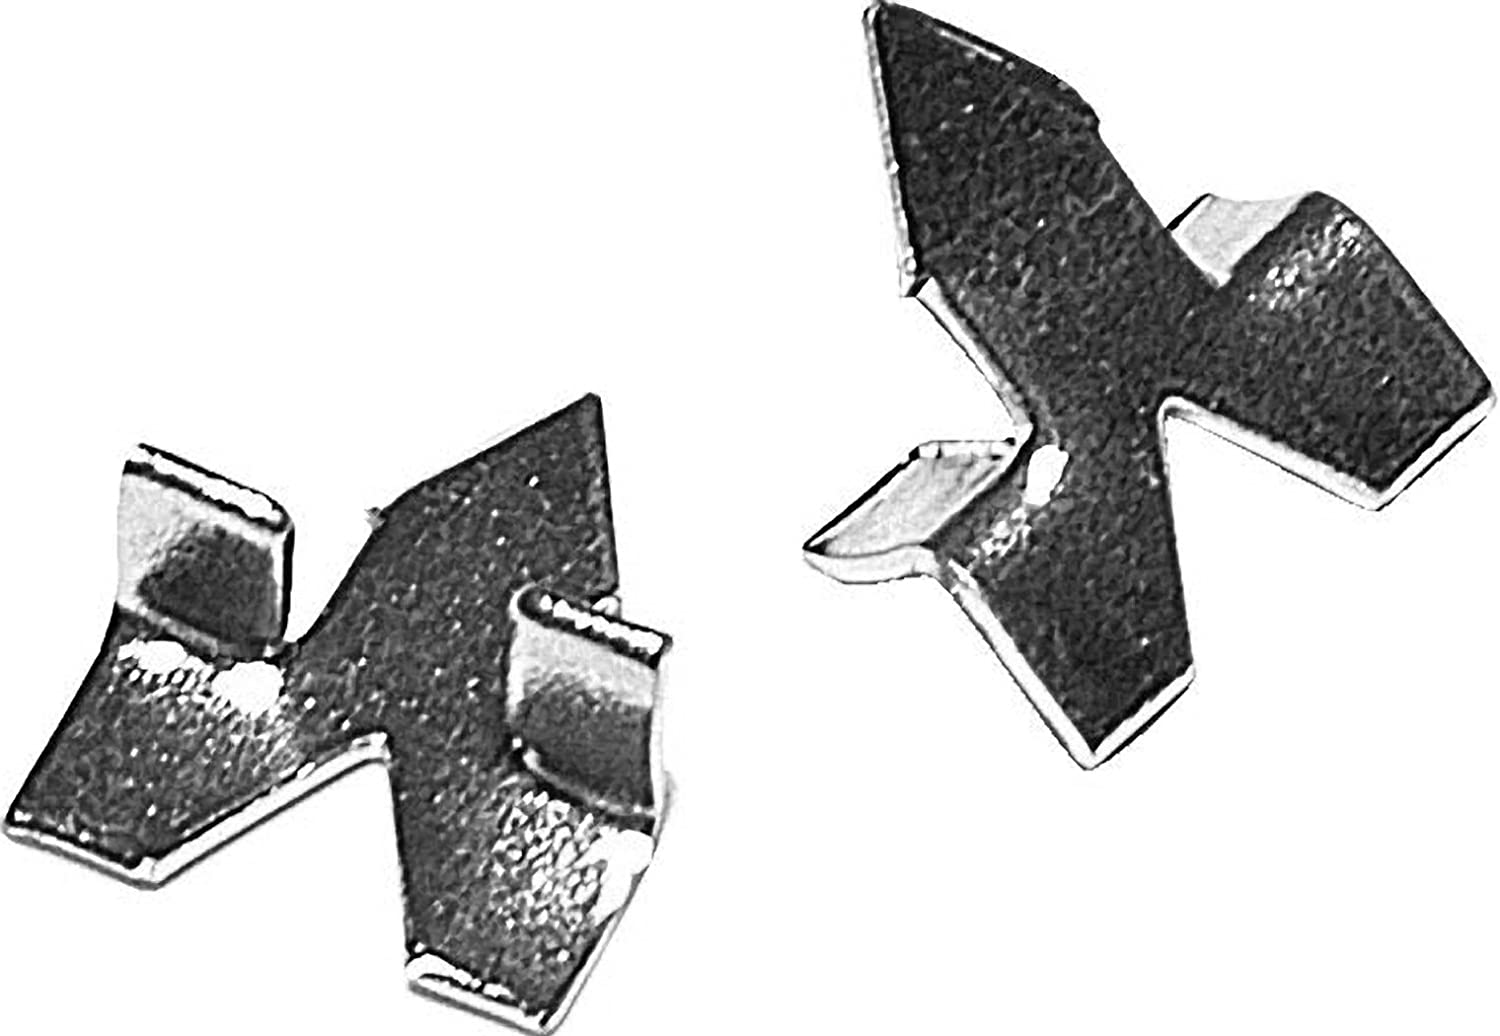 The Hillman Group 122663 Fence Staples